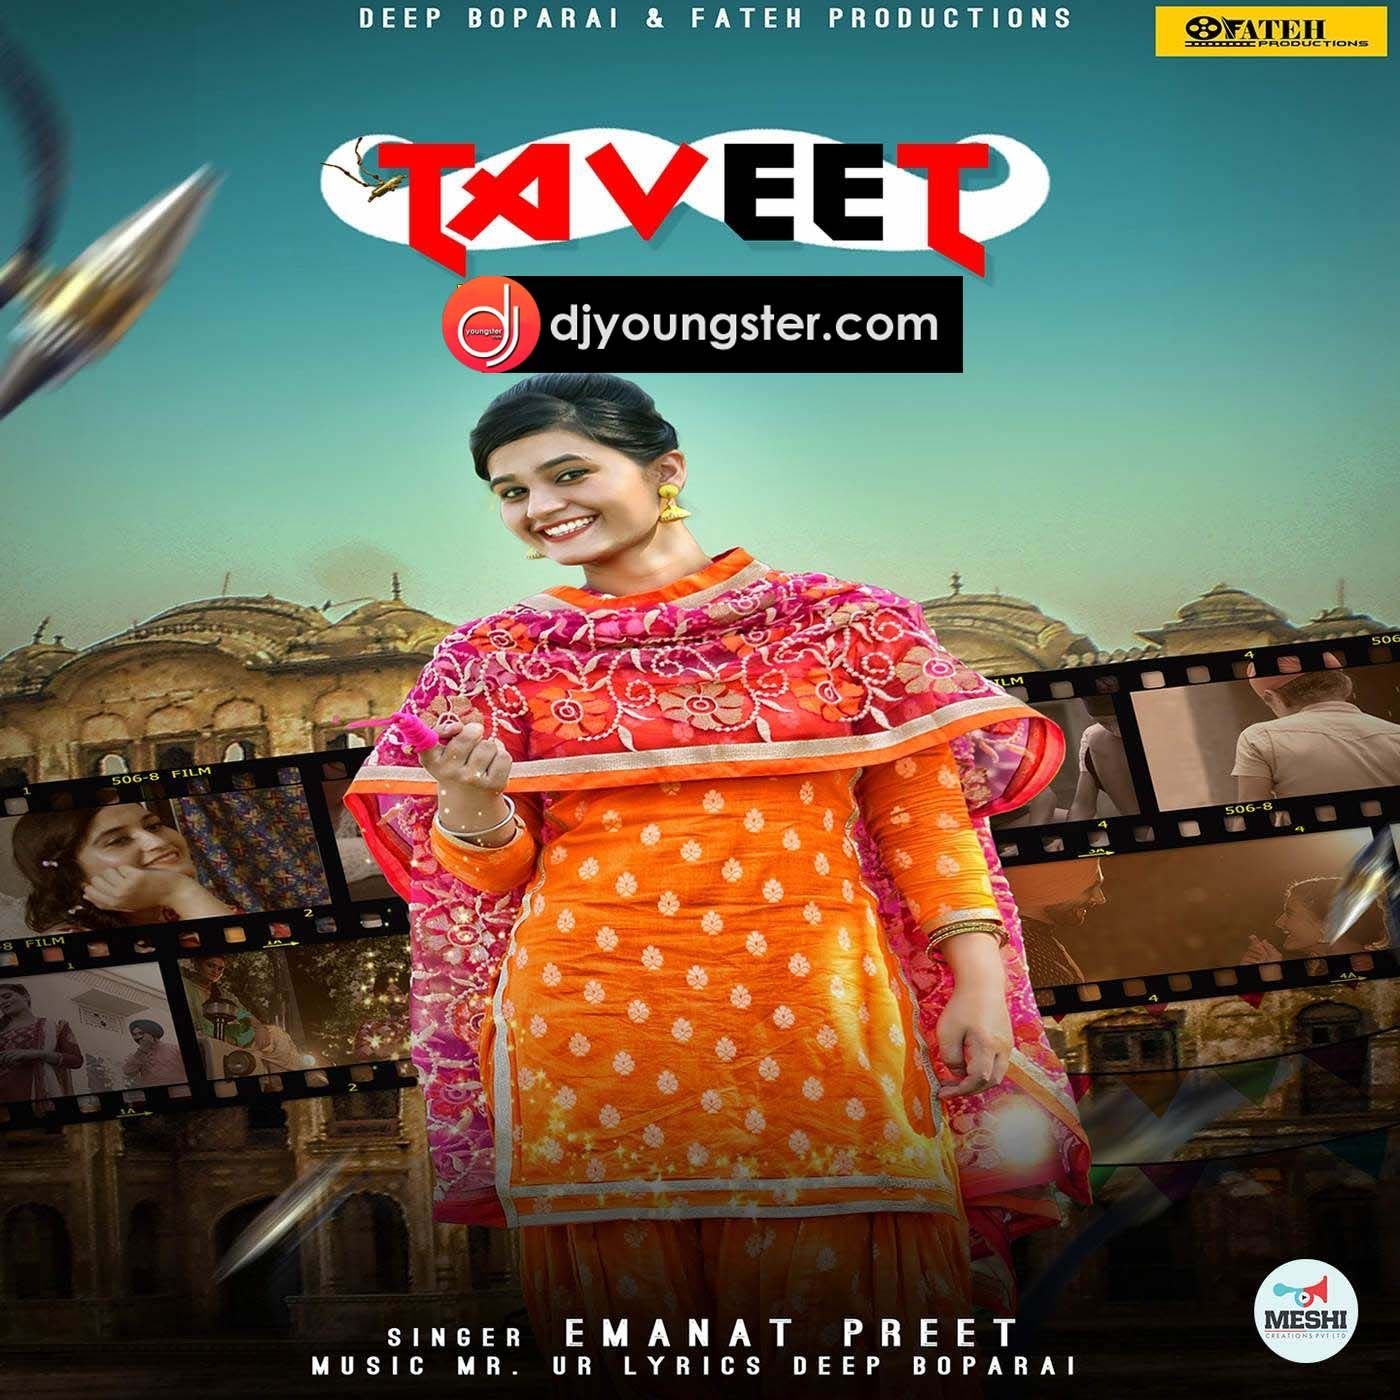 Taveet Emanat Preet Download Mp3 - DjYoungster